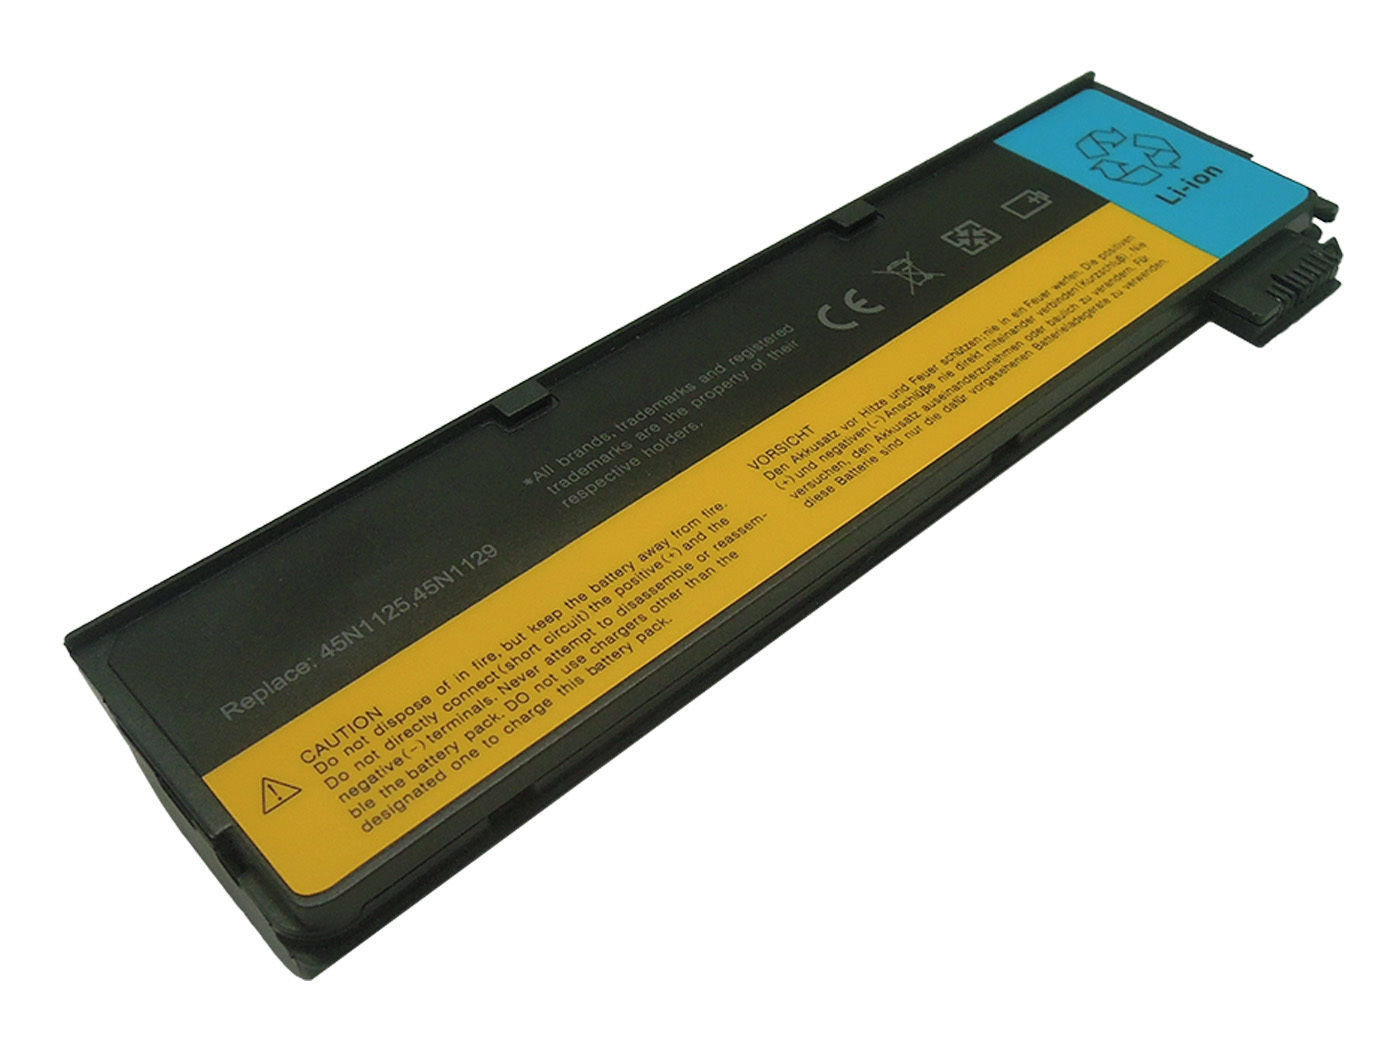 Lenovo X240 X240S T440 T440S compatible laptop battery